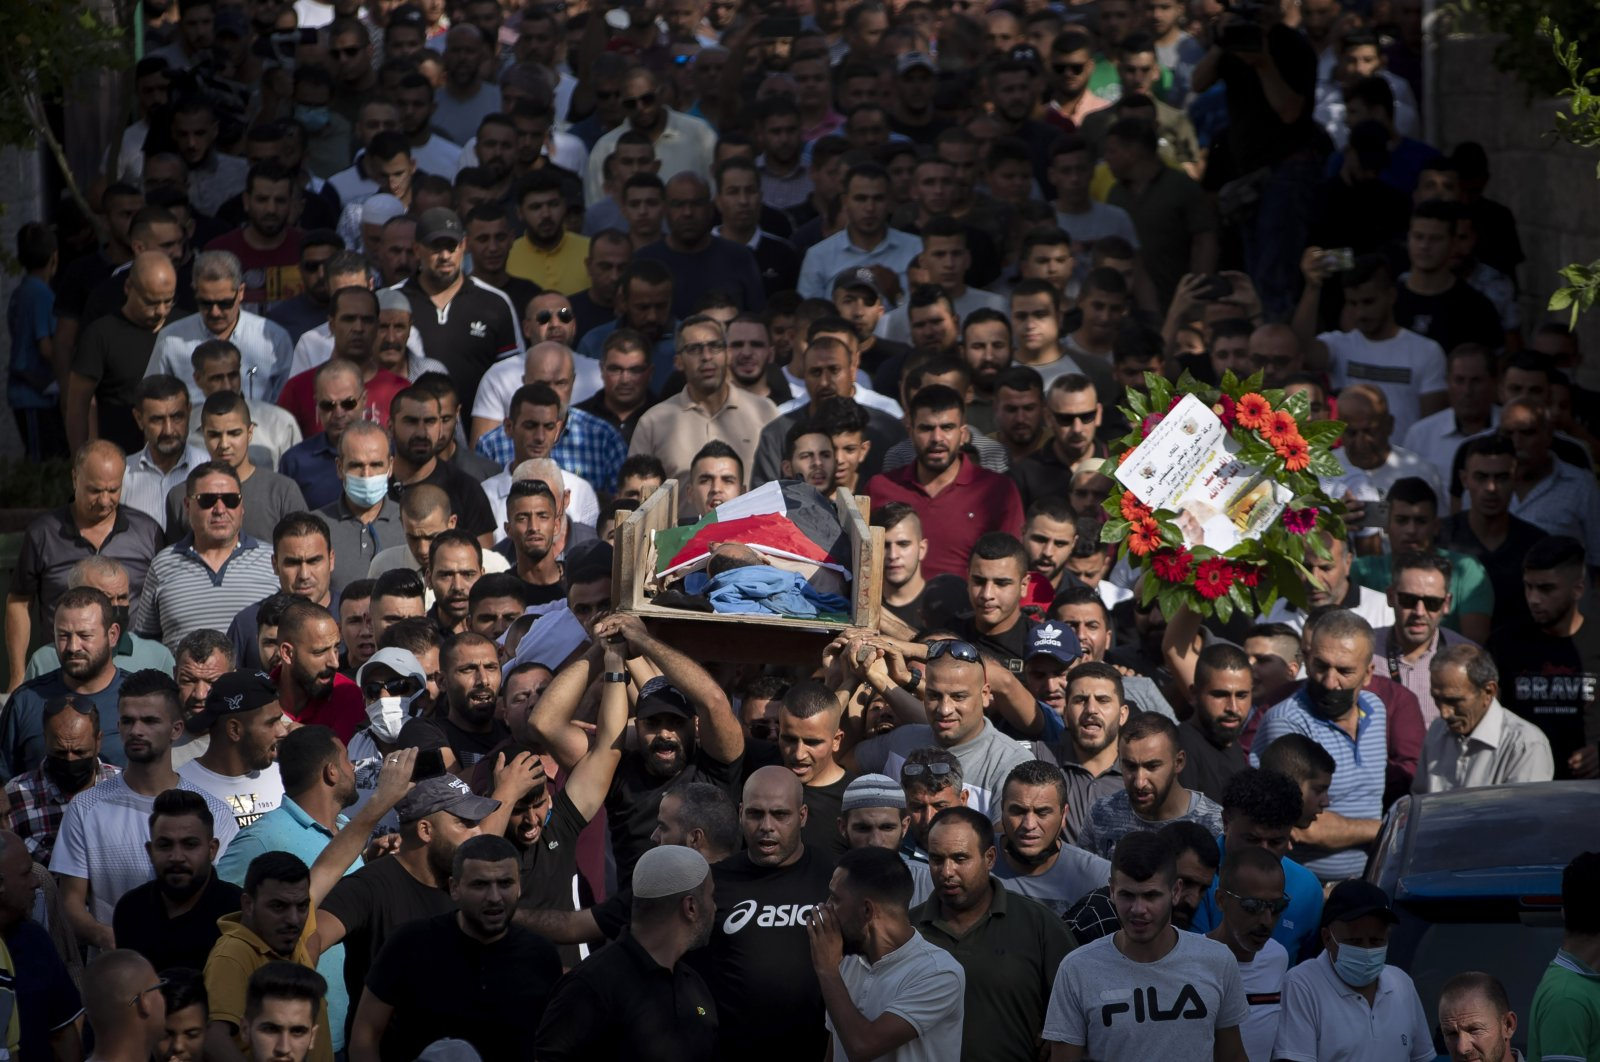 Palestinian mourners carry the body of a Palestinian citizen who was killed by Israeli forces at the western entrance of his village while returning from work in the early hours of Wednesday morning, during his funeral, in the West Bank village of Beit Ur al-Tahta, Palestine, Sept. 1, 2021. (AP Photo)